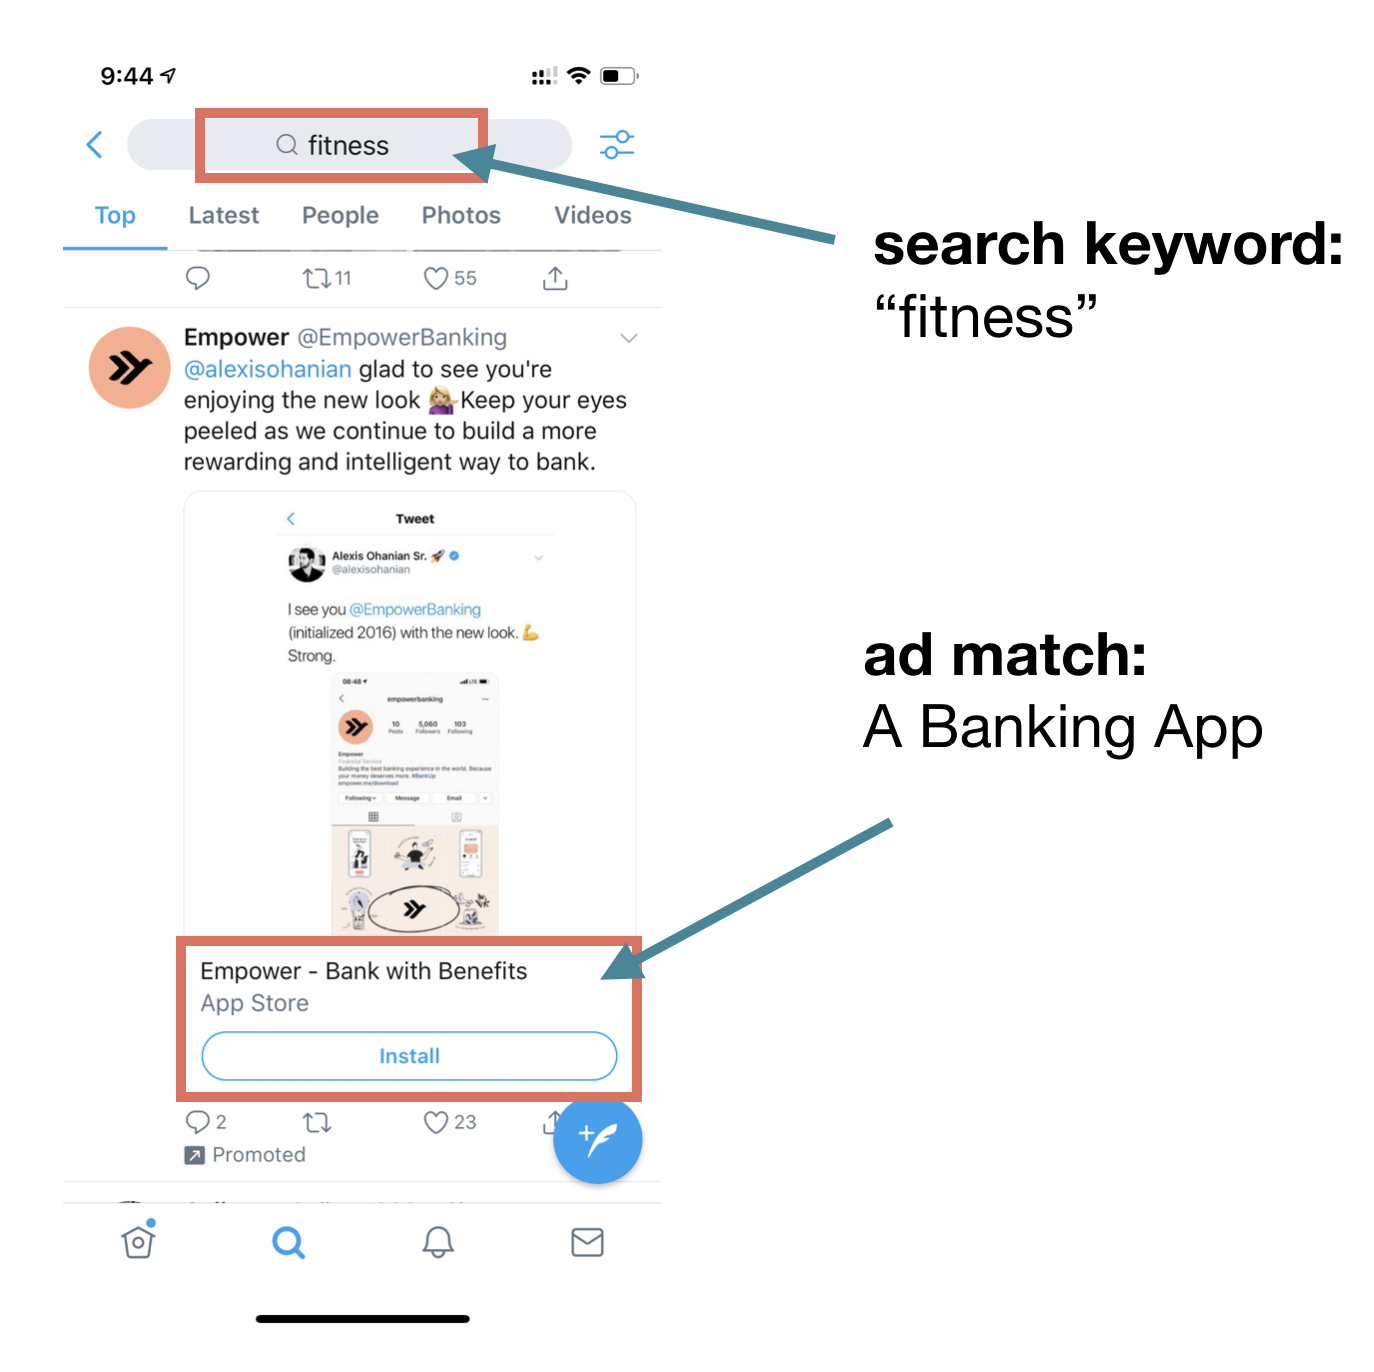 Twitter enables marketers to surfaces app install ads based upon various targeting criteria.